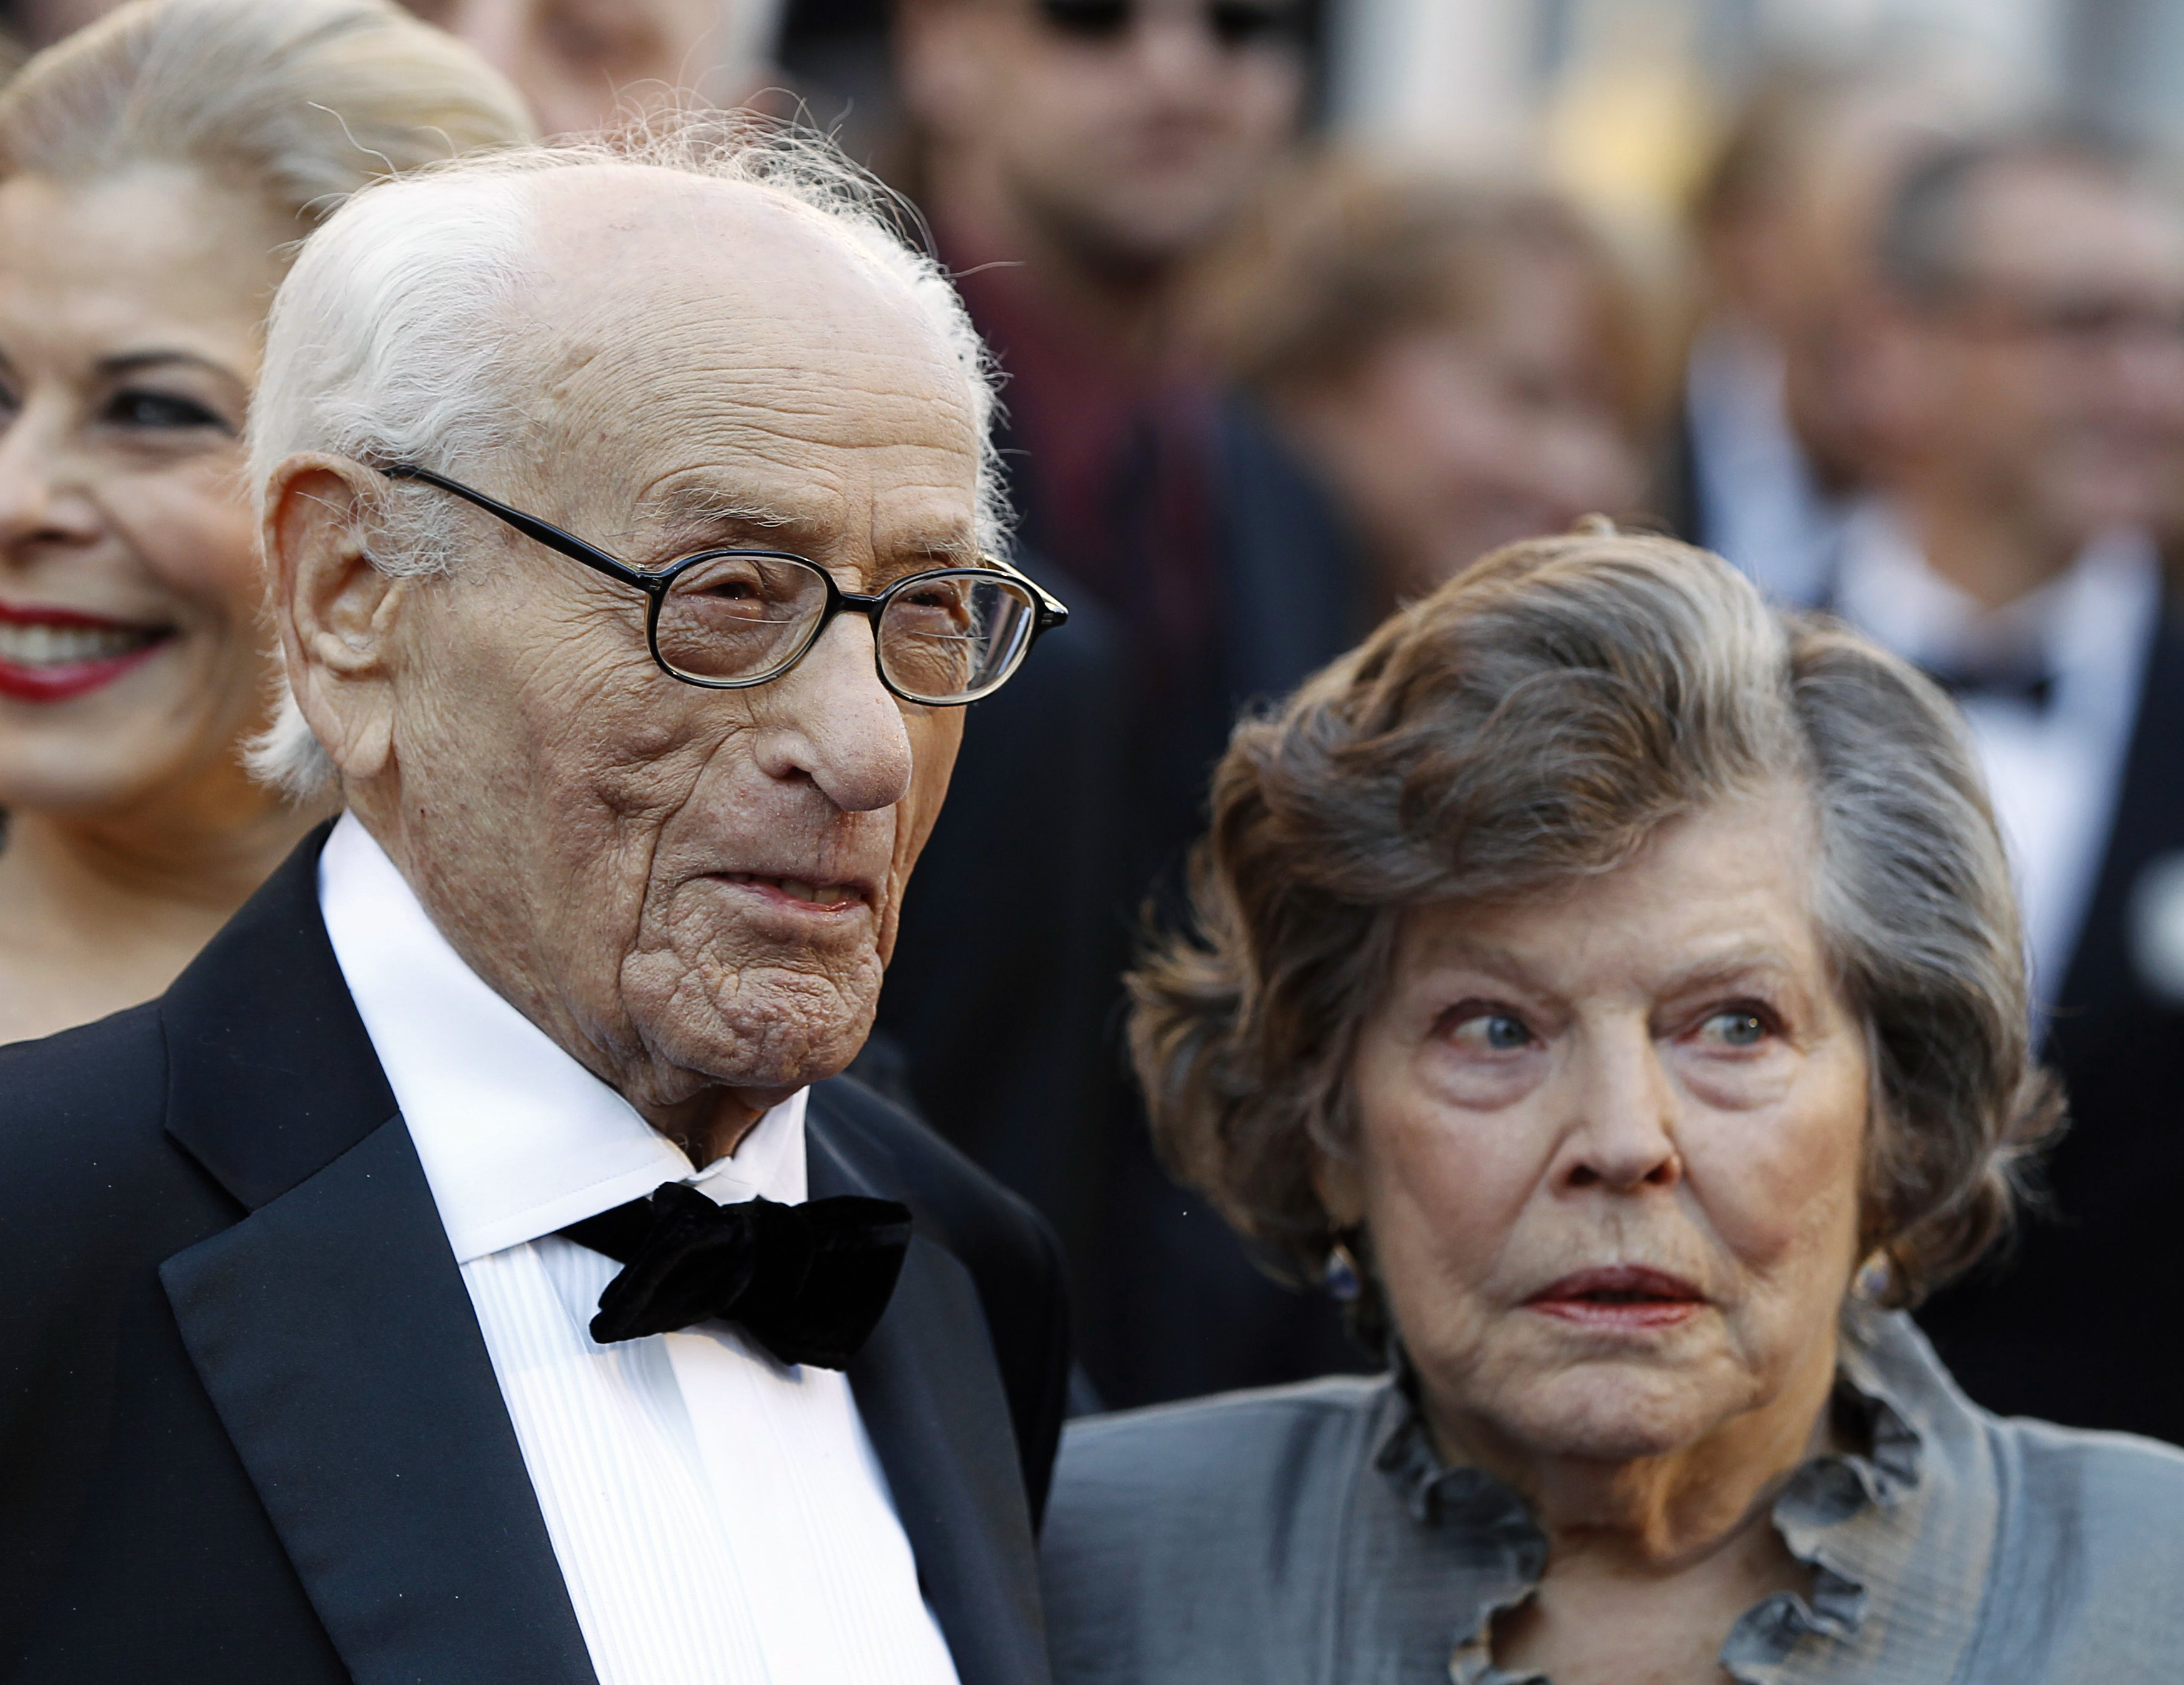 Honorary Oscar recipient actor Eli Wallach and wife Anne Jackson arrive at the 83rd Academy Awards in Los Angeles on Feb. 27, 2011